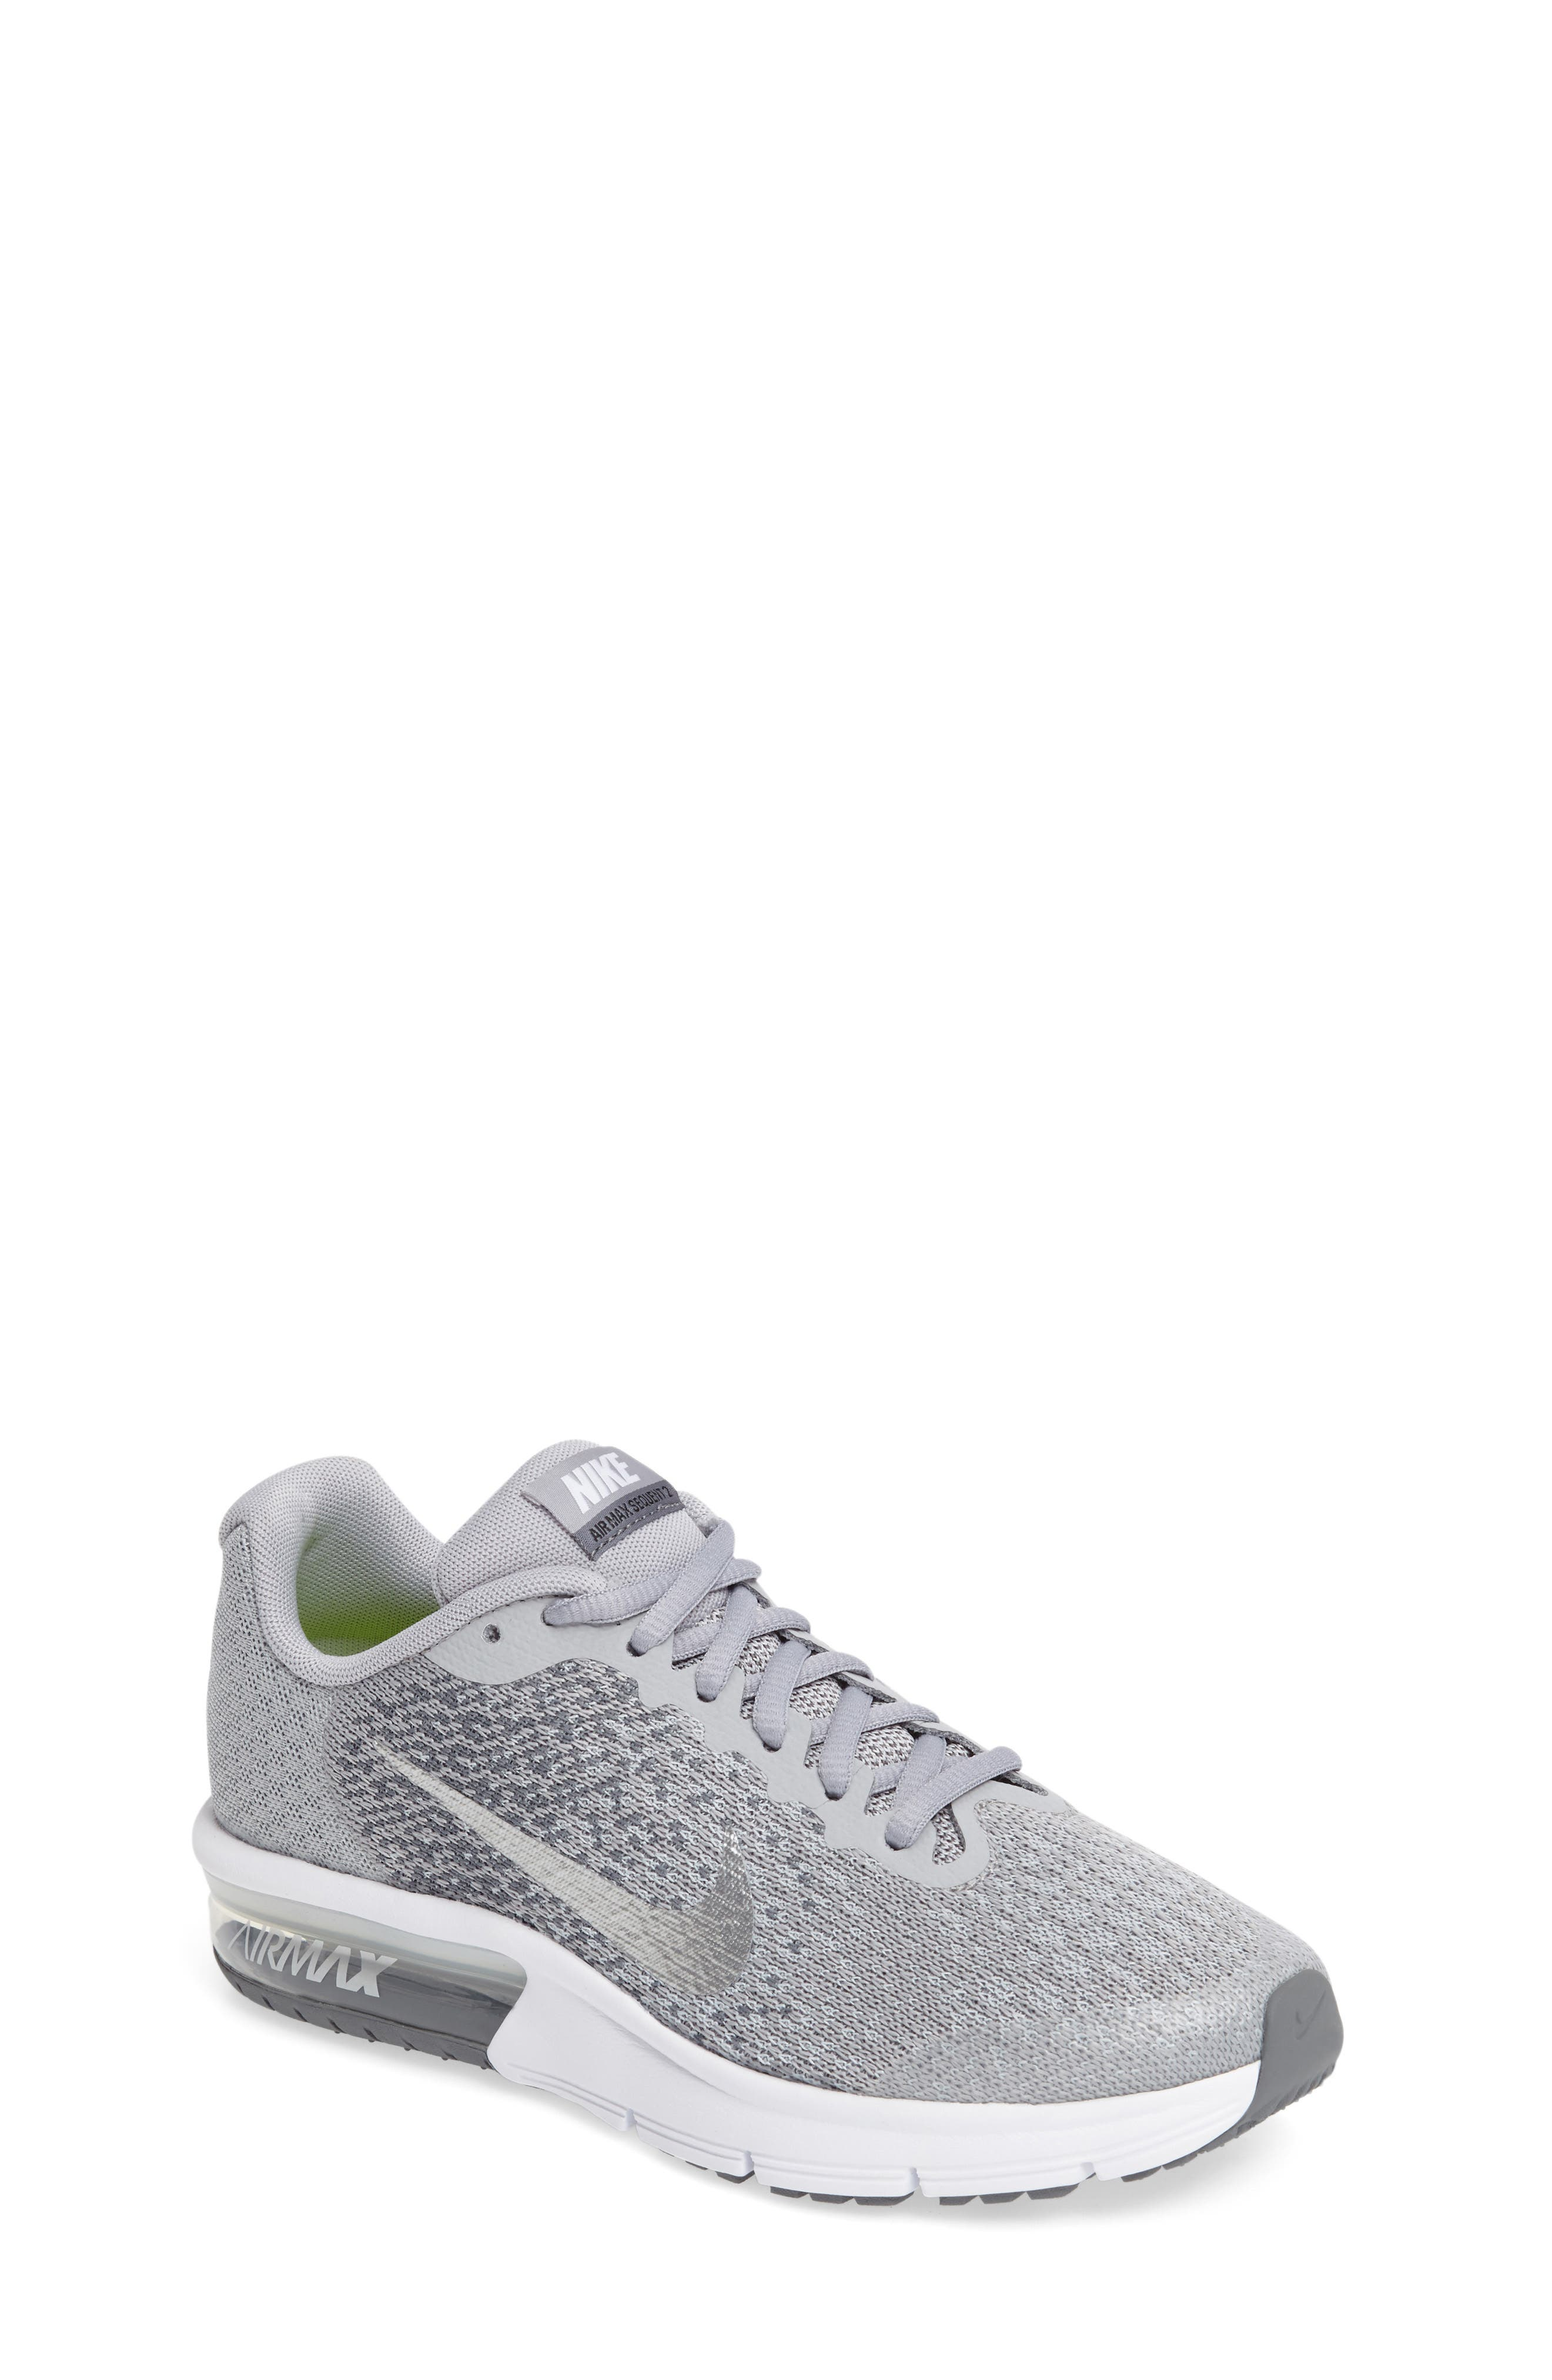 Air Max Sequent 2 Sneaker,                         Main,                         color, 020